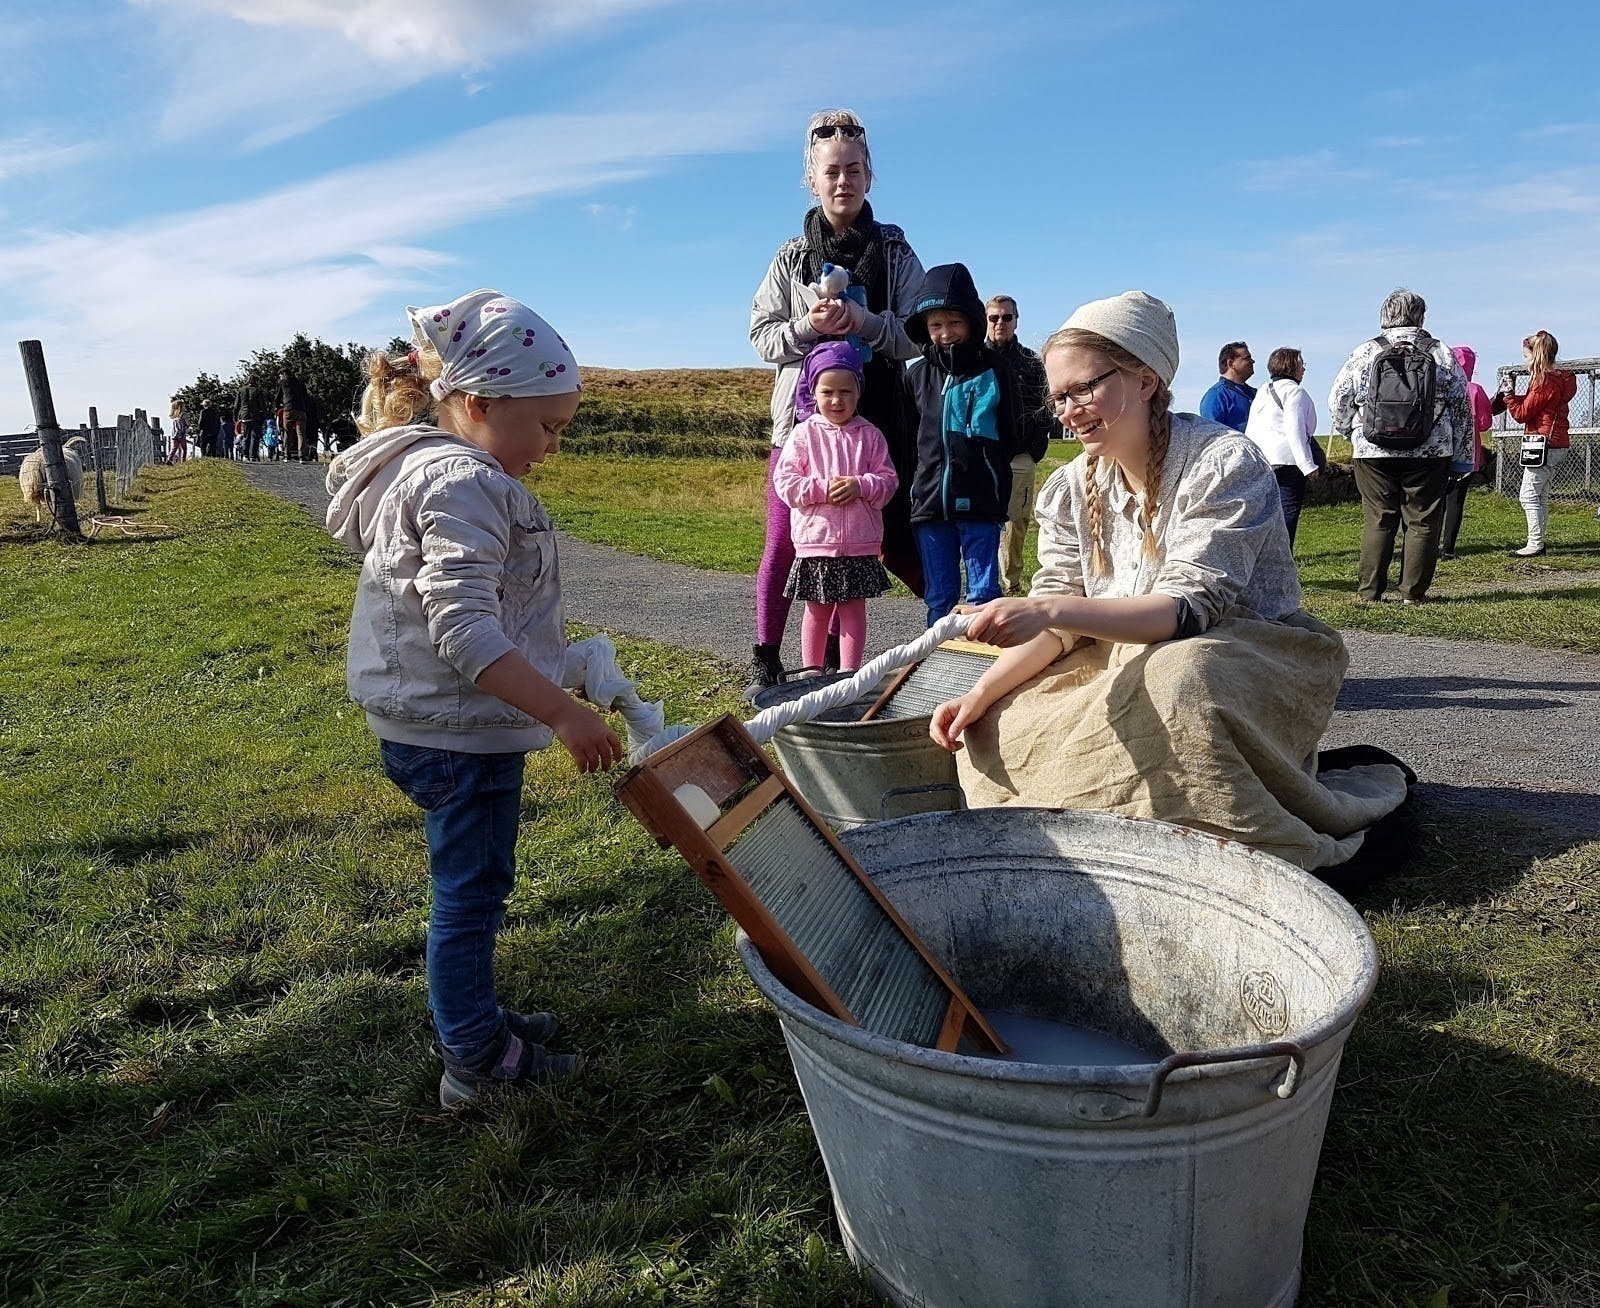 what-to-do-with-younger-kids-in-the-reykjavik-area-20.jpg?auto=format&ch=Width%2CDPR&dpr=1&ixlib=php-1.1.0&q=80&w=644&s=0f35dbc18ad4ecbfc28c48645621eeb4.jpg